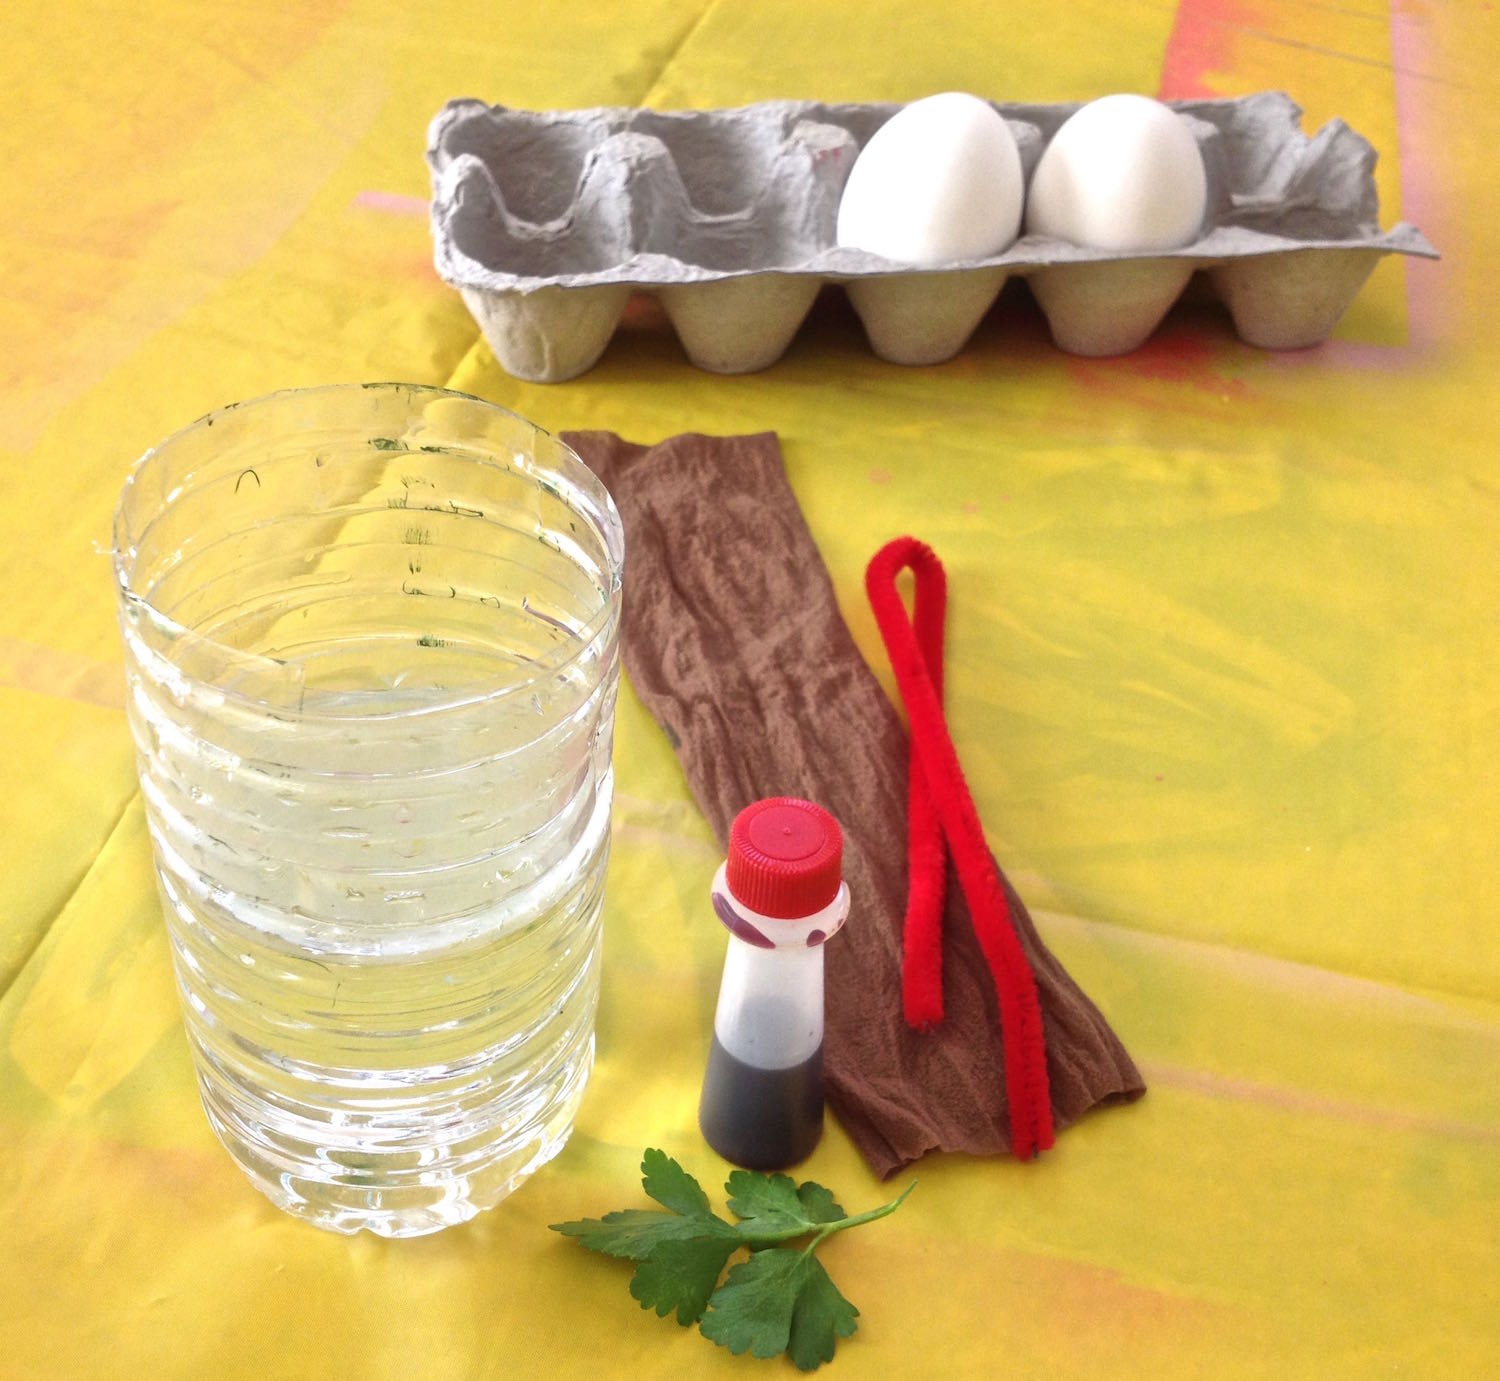 DYING EGGS  Knee Highs, Water Bottles and Pipe Cleaners One very convenient way to decorate eggs with food color is to dunk them. I found some easy tools to use that keep your hands relatively dye-free and require little clean up.